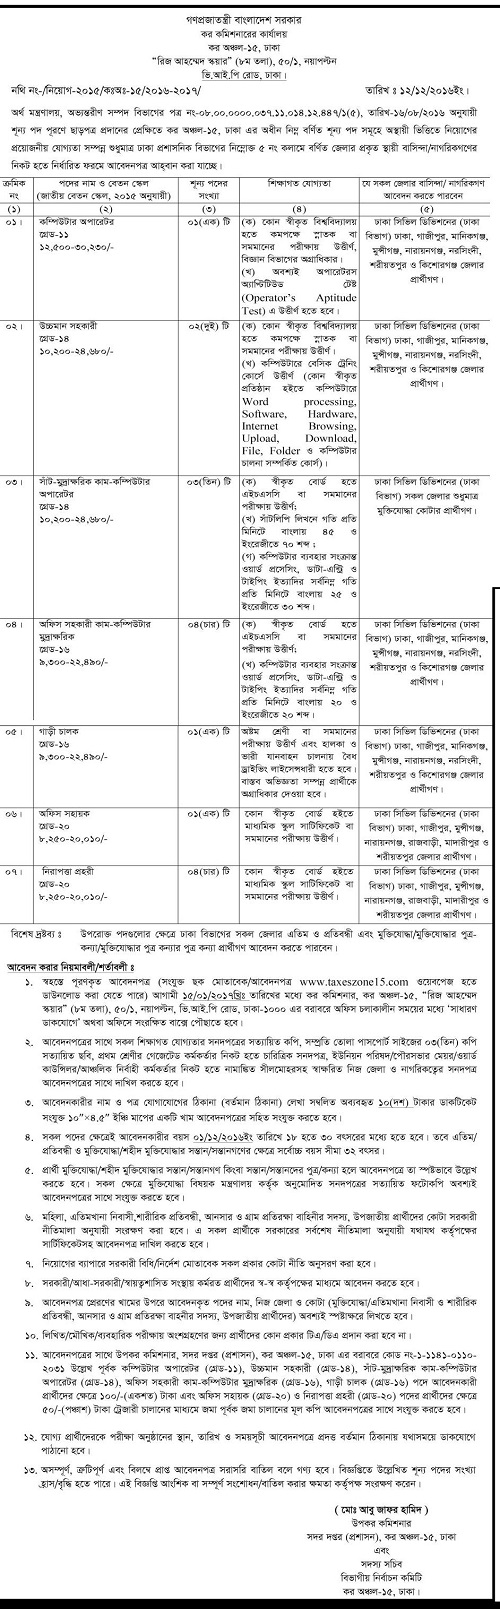 Customs Excise and VAT Commissionerate Job Circular, Customs Job ...